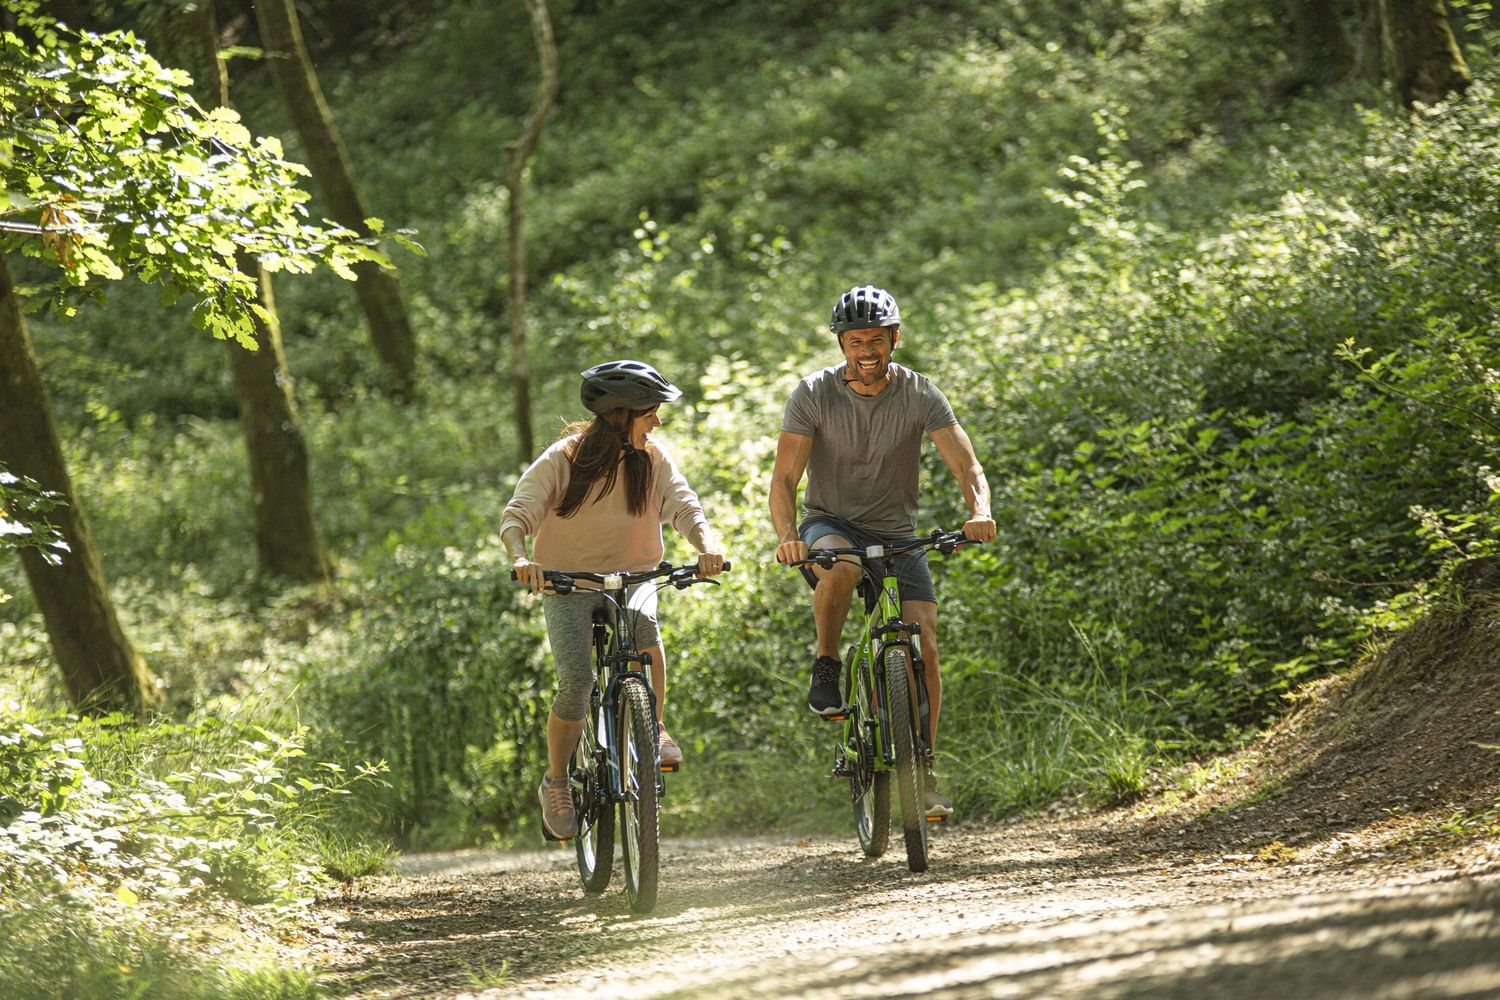 Bicycle, Vehicle, Transportation, Person, Mountain Bike, Cyclist, Path, Land, Helmet, Woodland